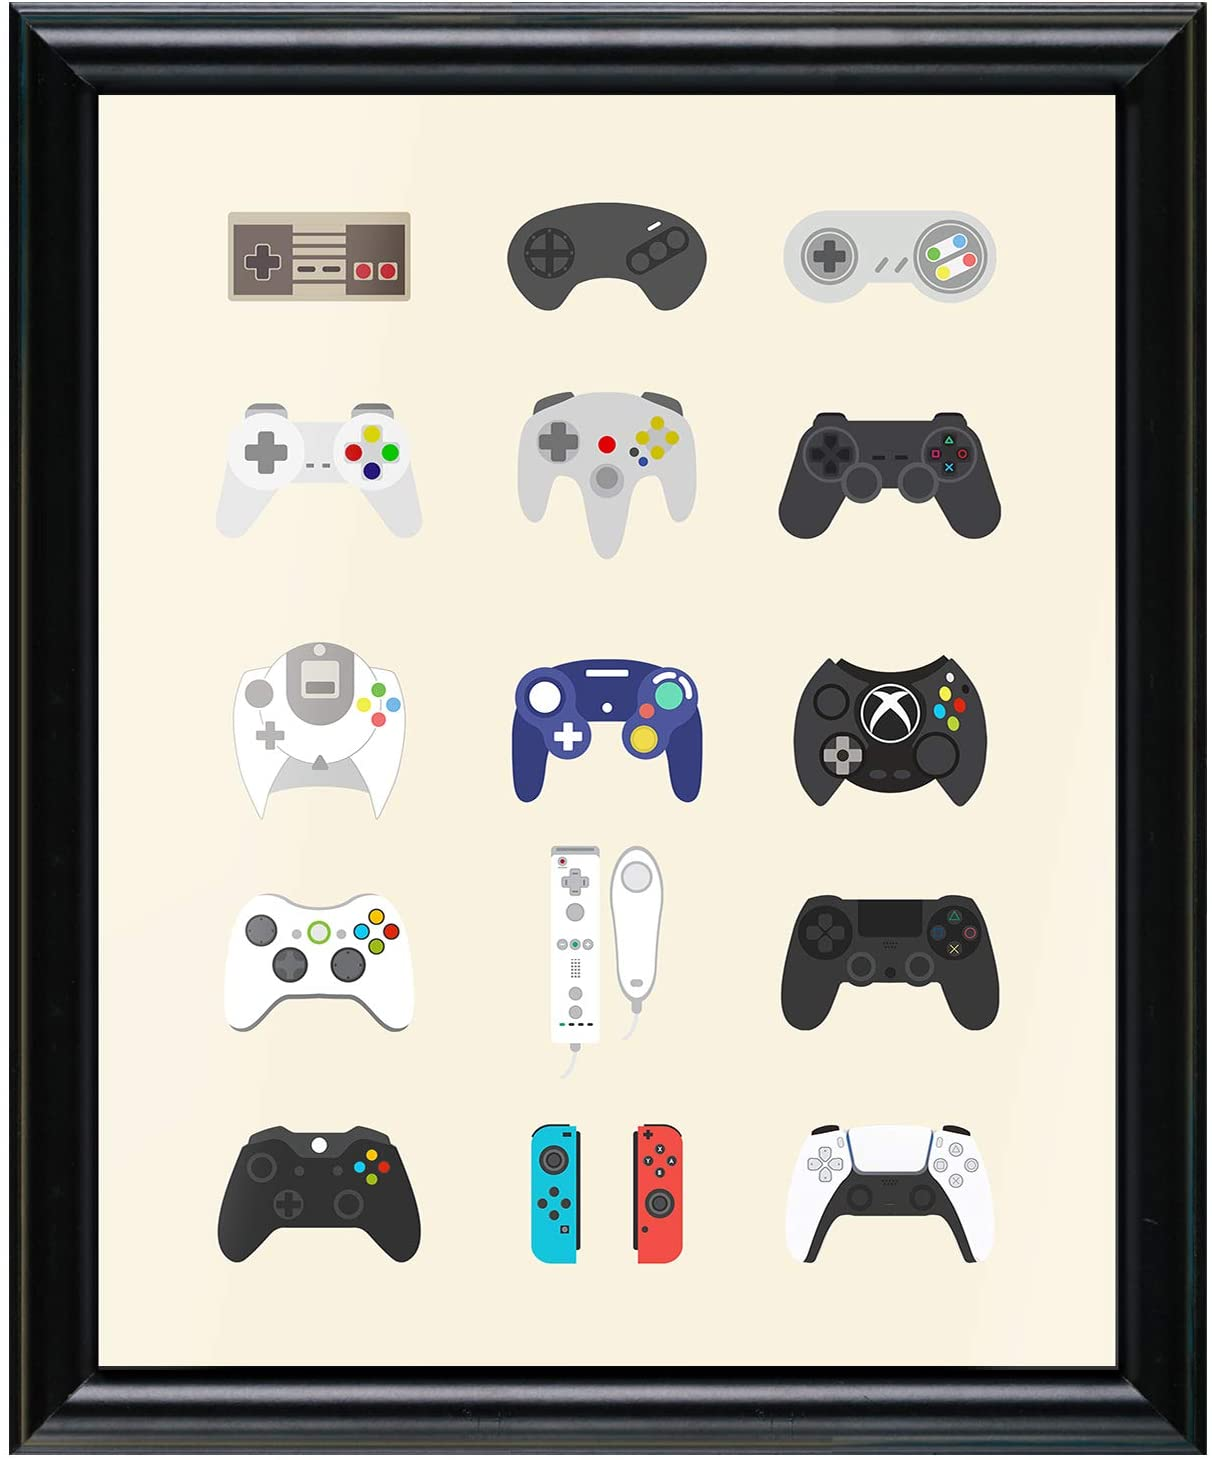 Retro Video Game Posters,Video Gaming Posters for Gamer Room Decor,Gamer Decor for Boys Room(8